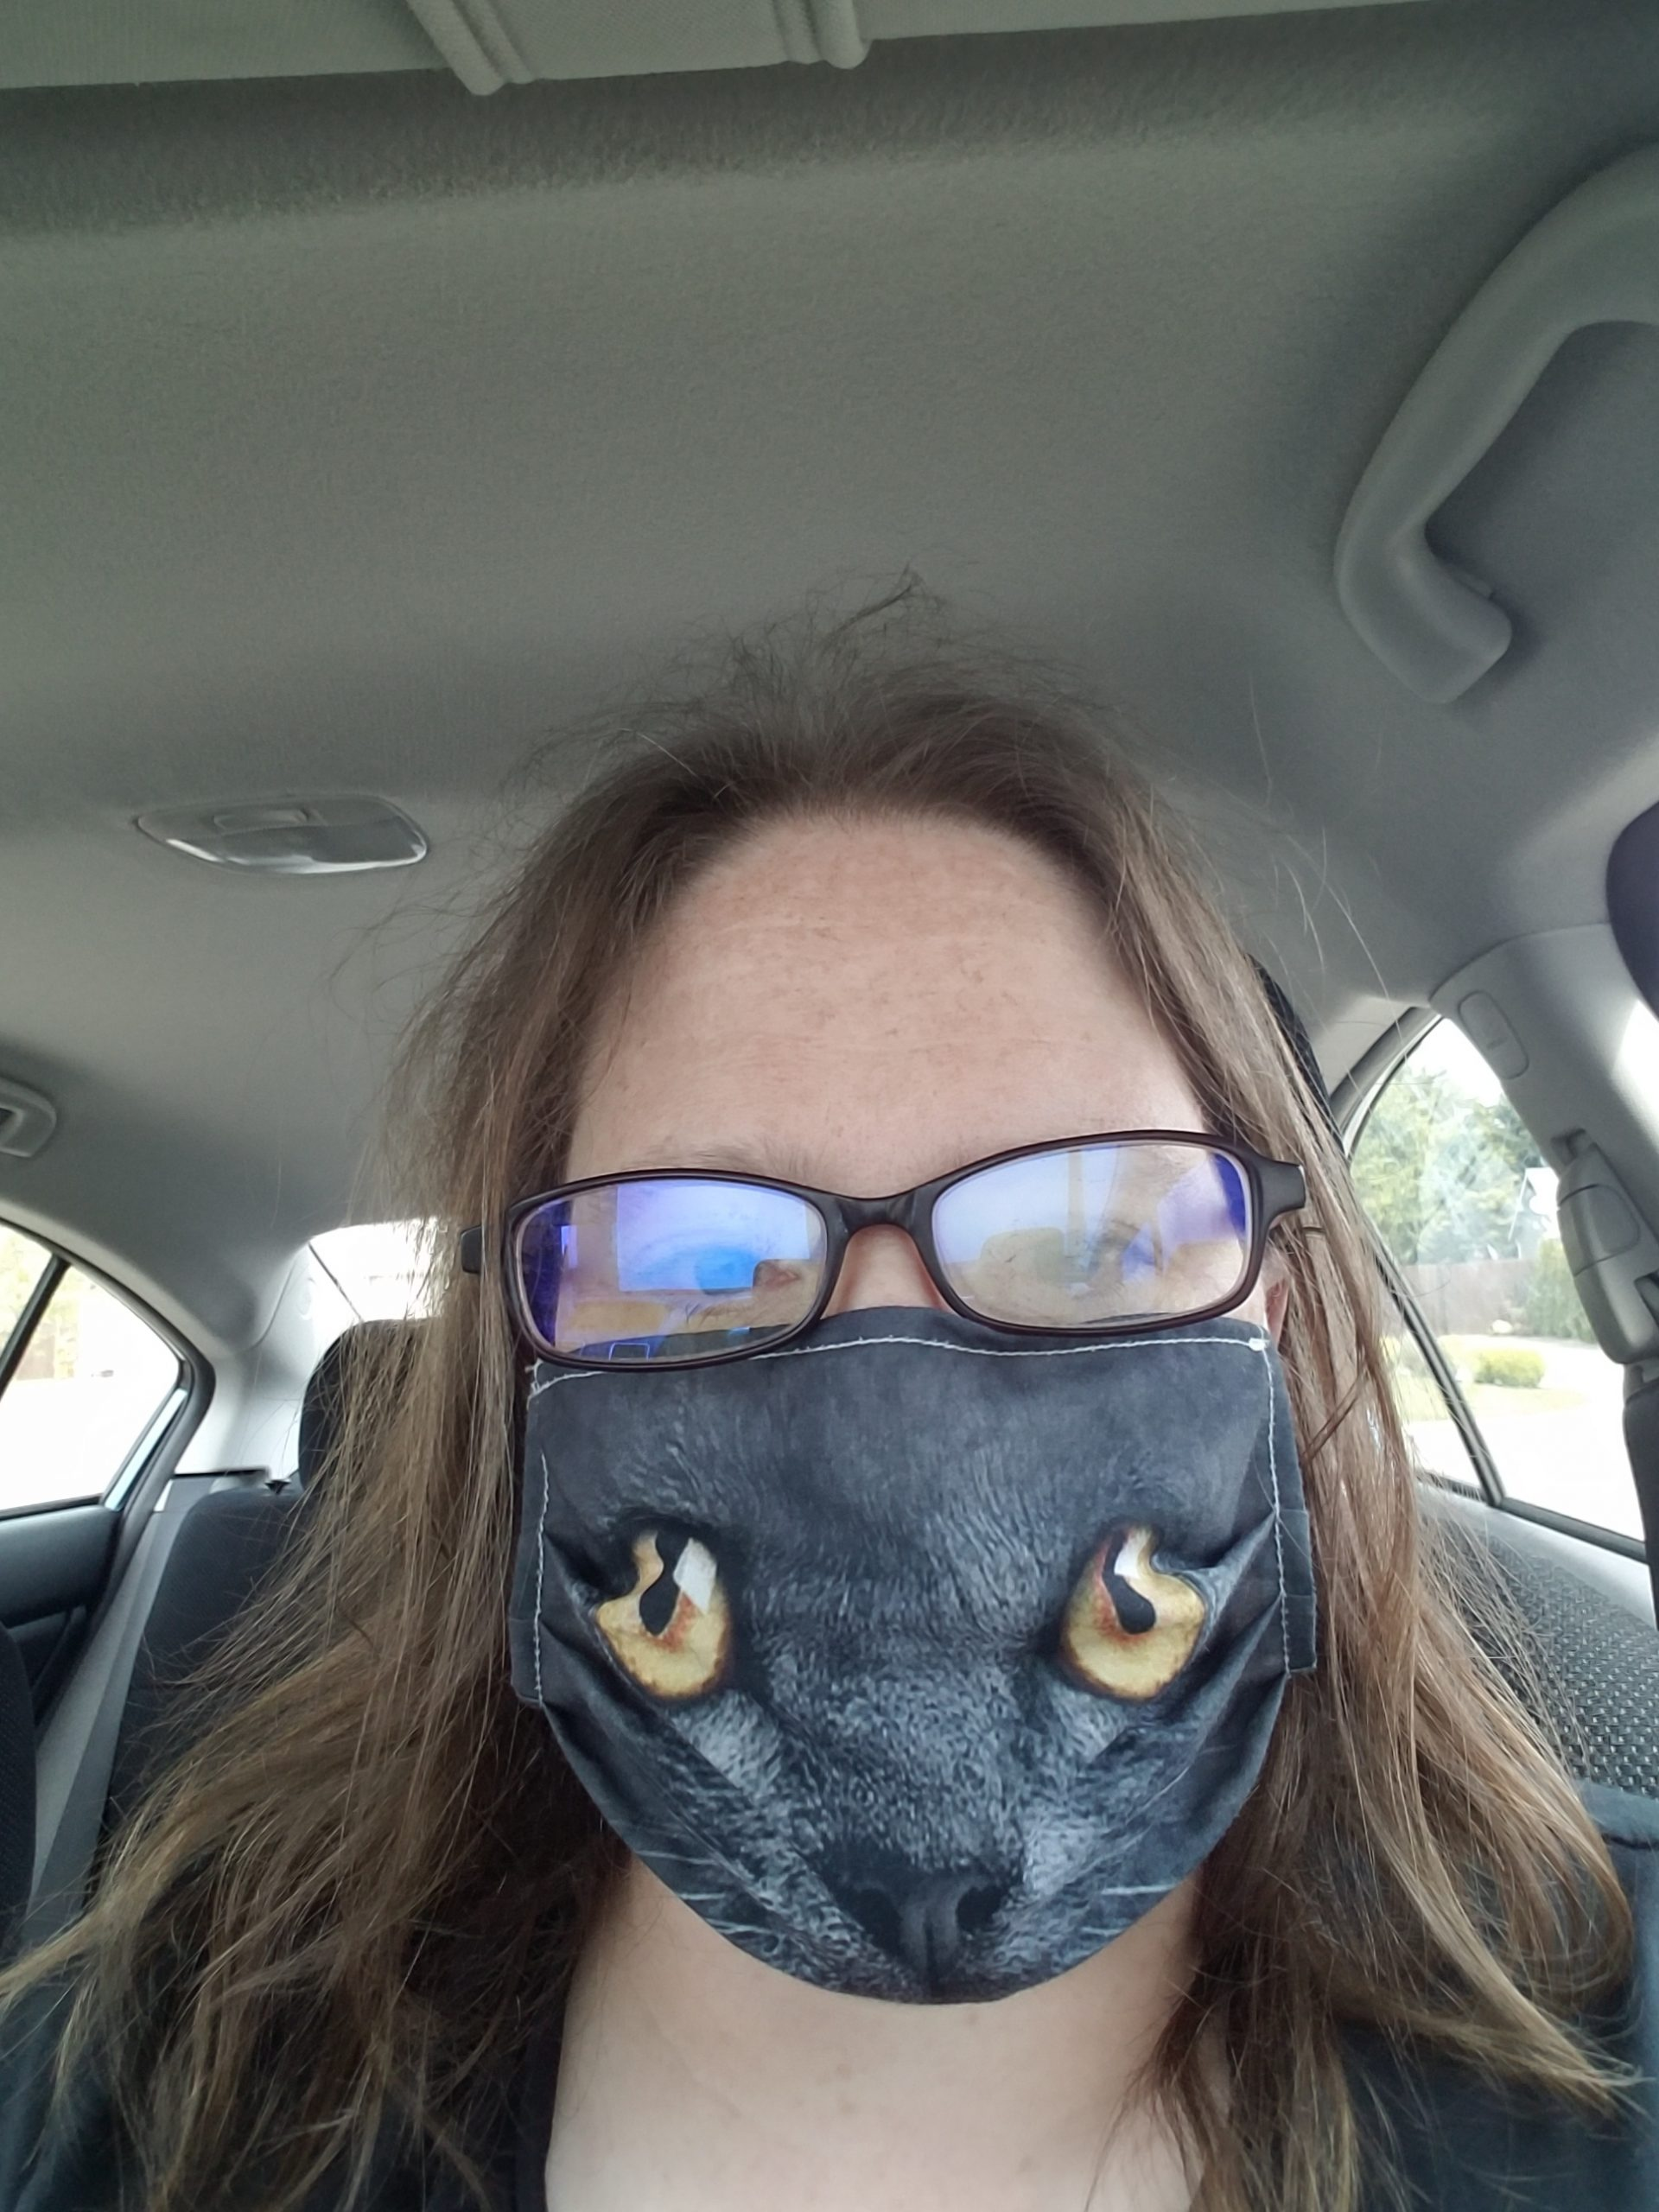 Kitty mask selfie!